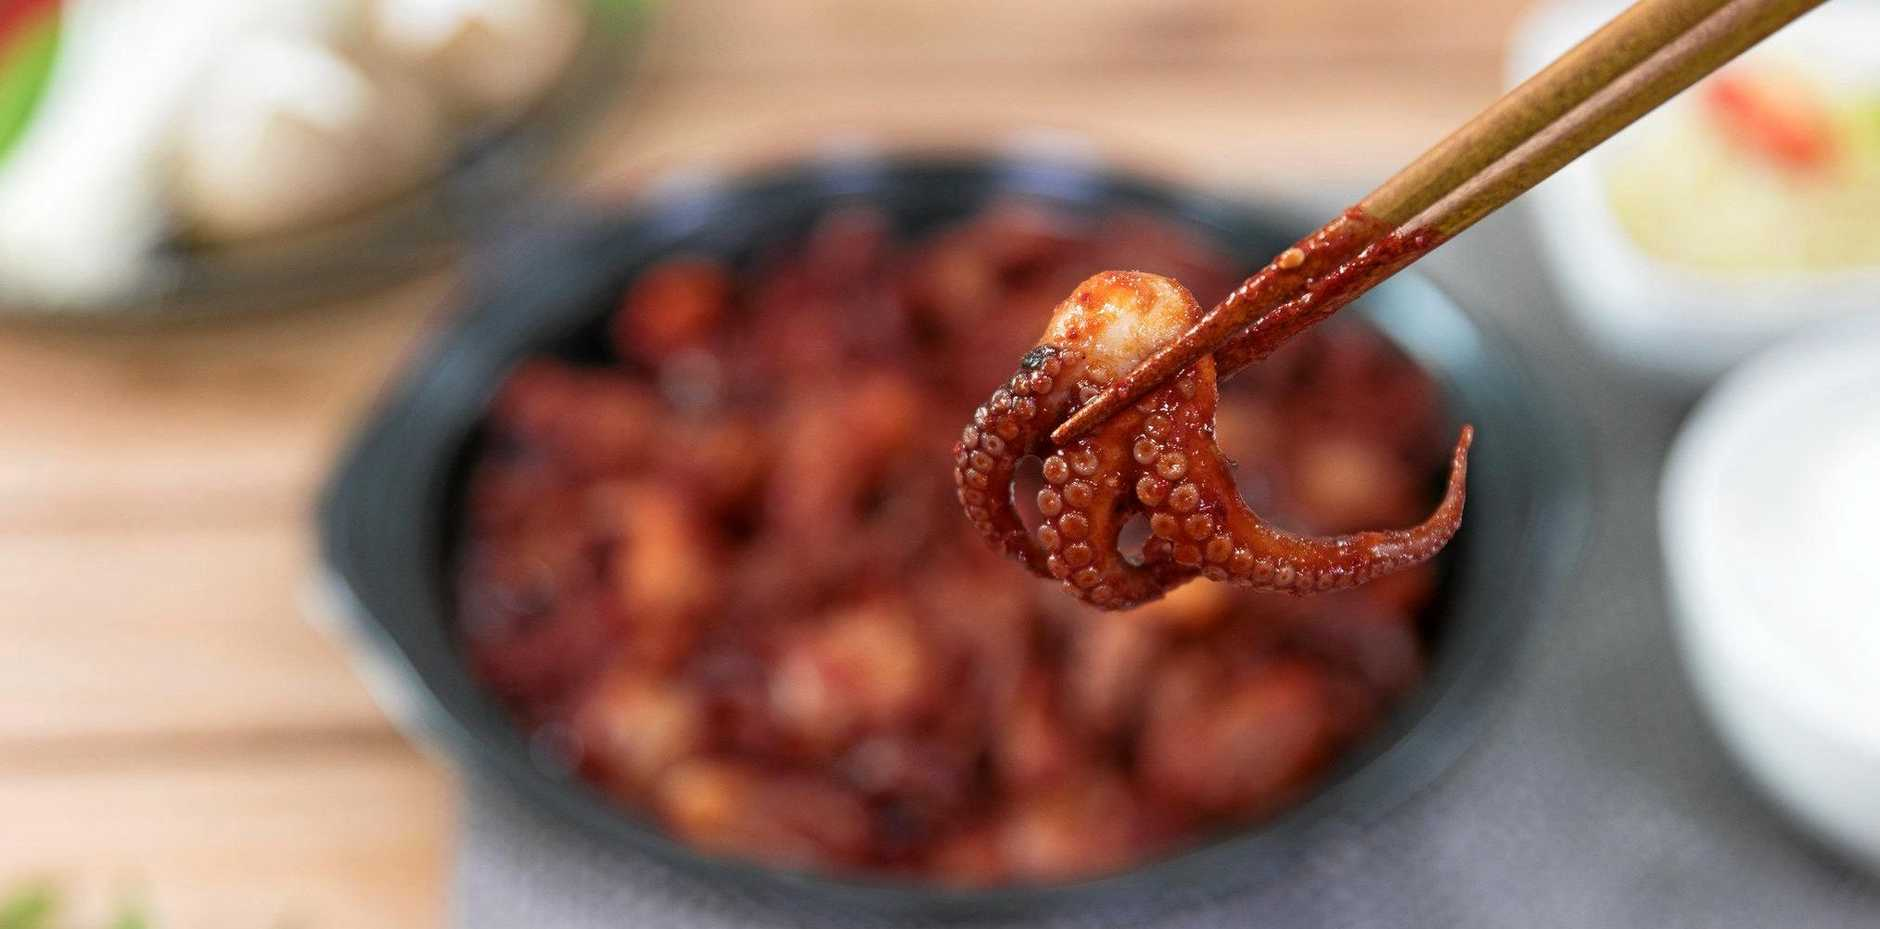 The Korean-style marinade provides a tasty barbecued octopus.